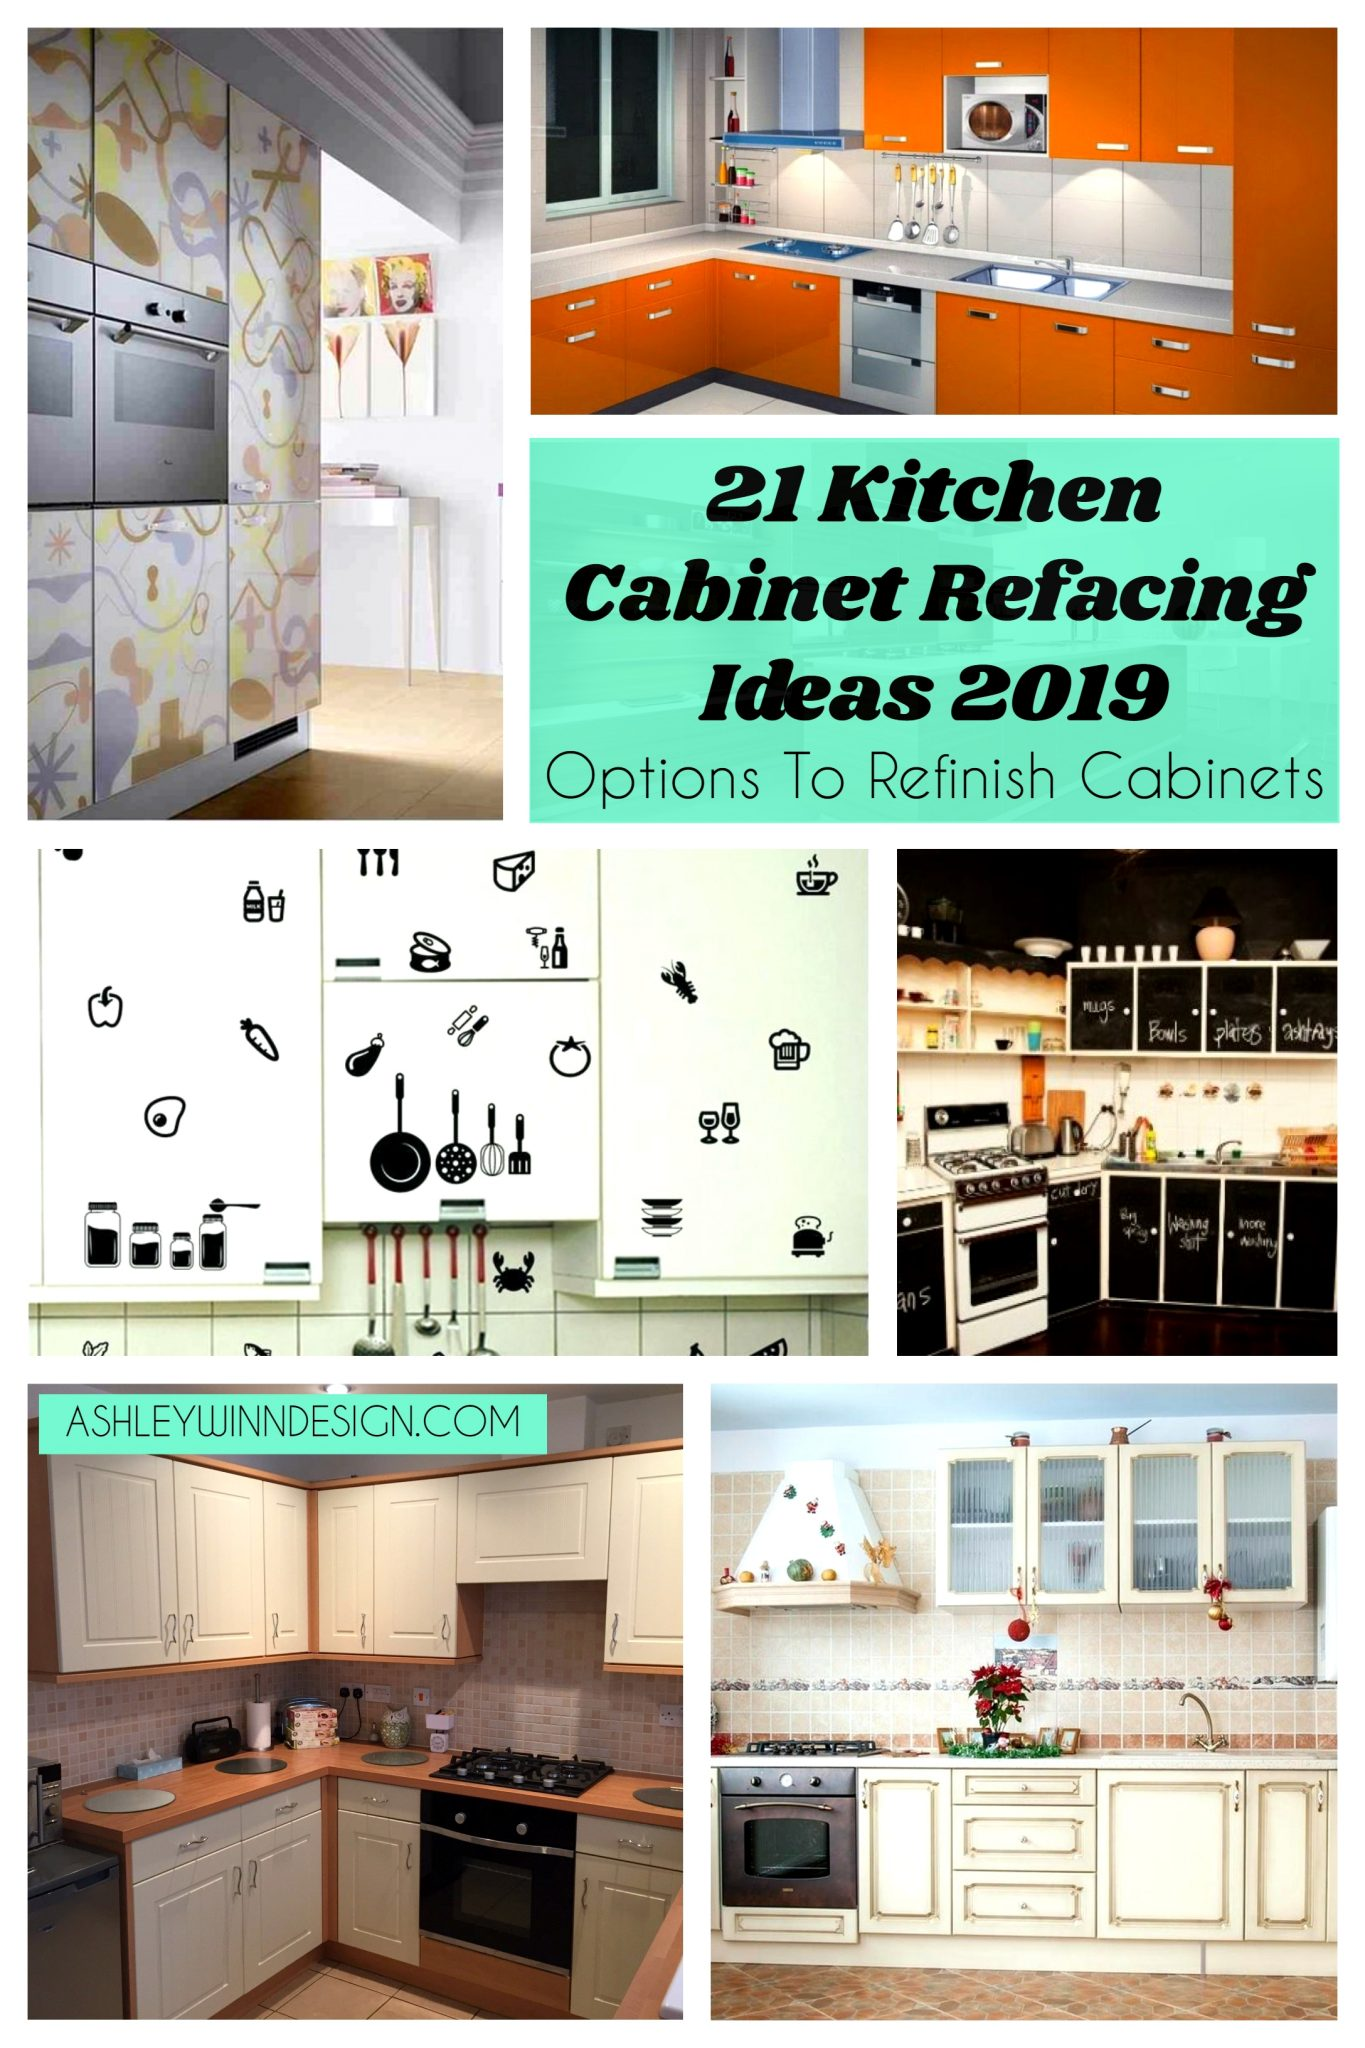 21 Kitchen Cabinet Refacing Ideas 2019 Options To Refinish